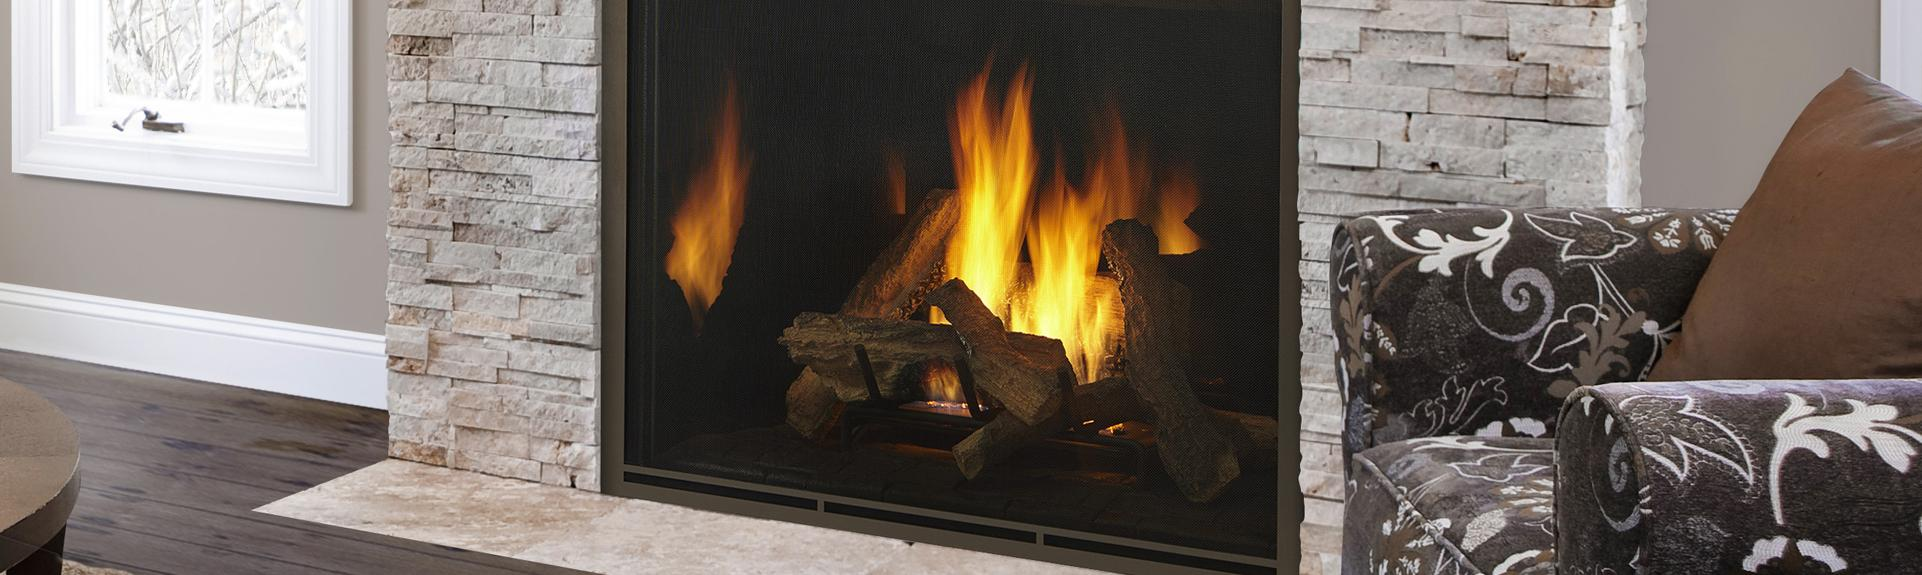 burn wise faq monmouth county wood stove u0026 fireplace center